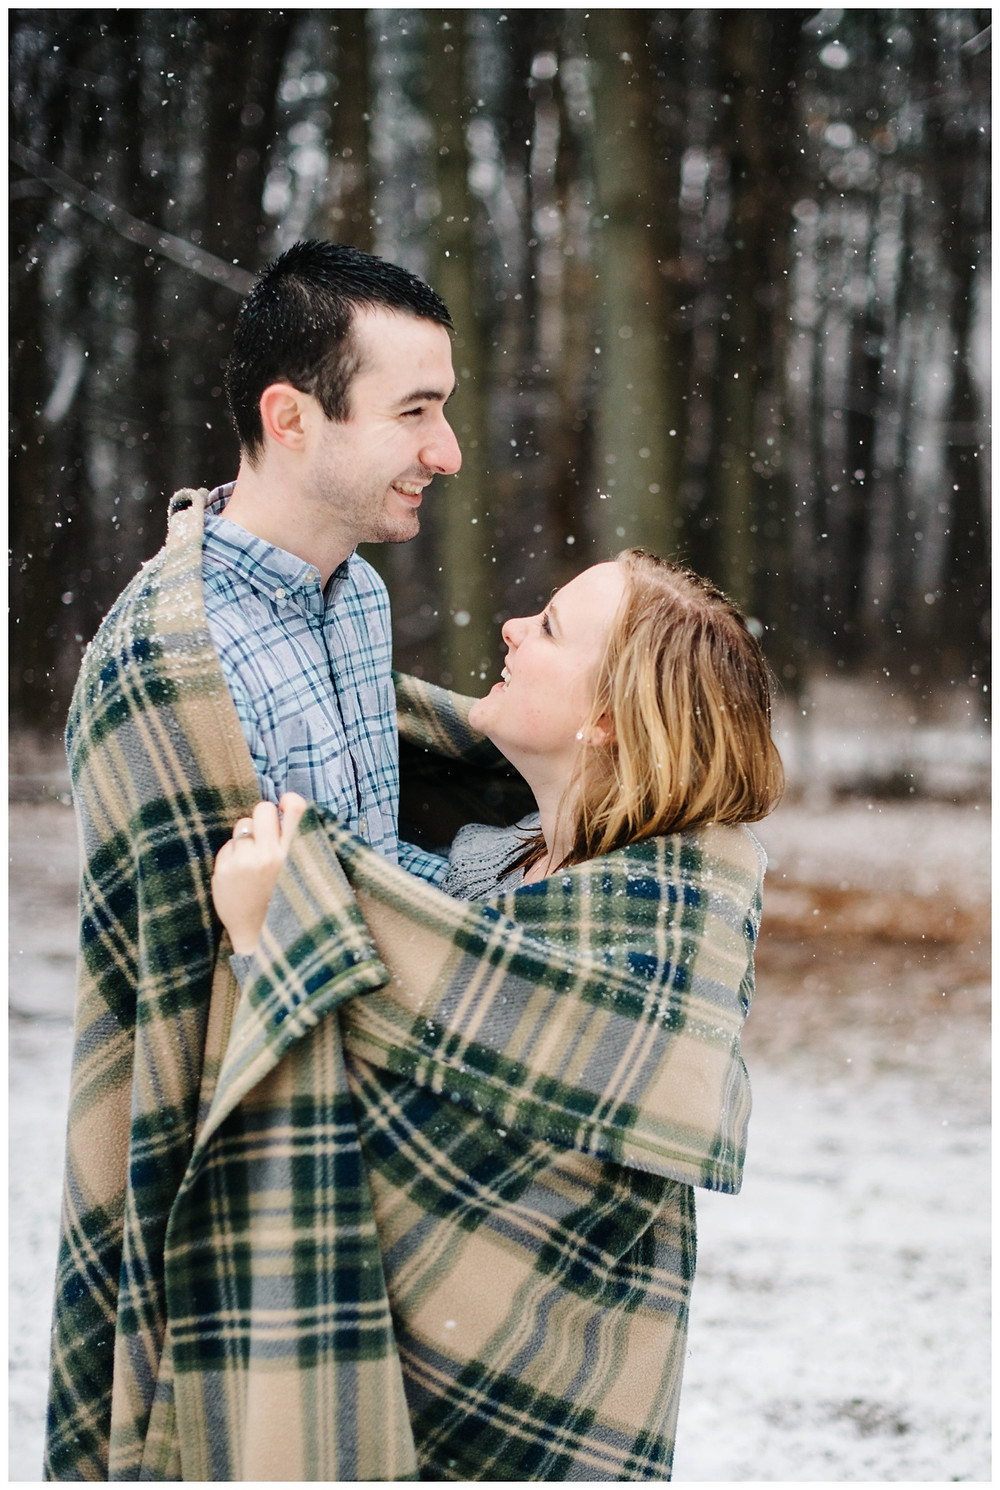 engaged-couple-laughing-under-blanket-at-snowy-sheboygan-engagement-session-by-green-bay-wedding-photographer-kyra-rane-photography